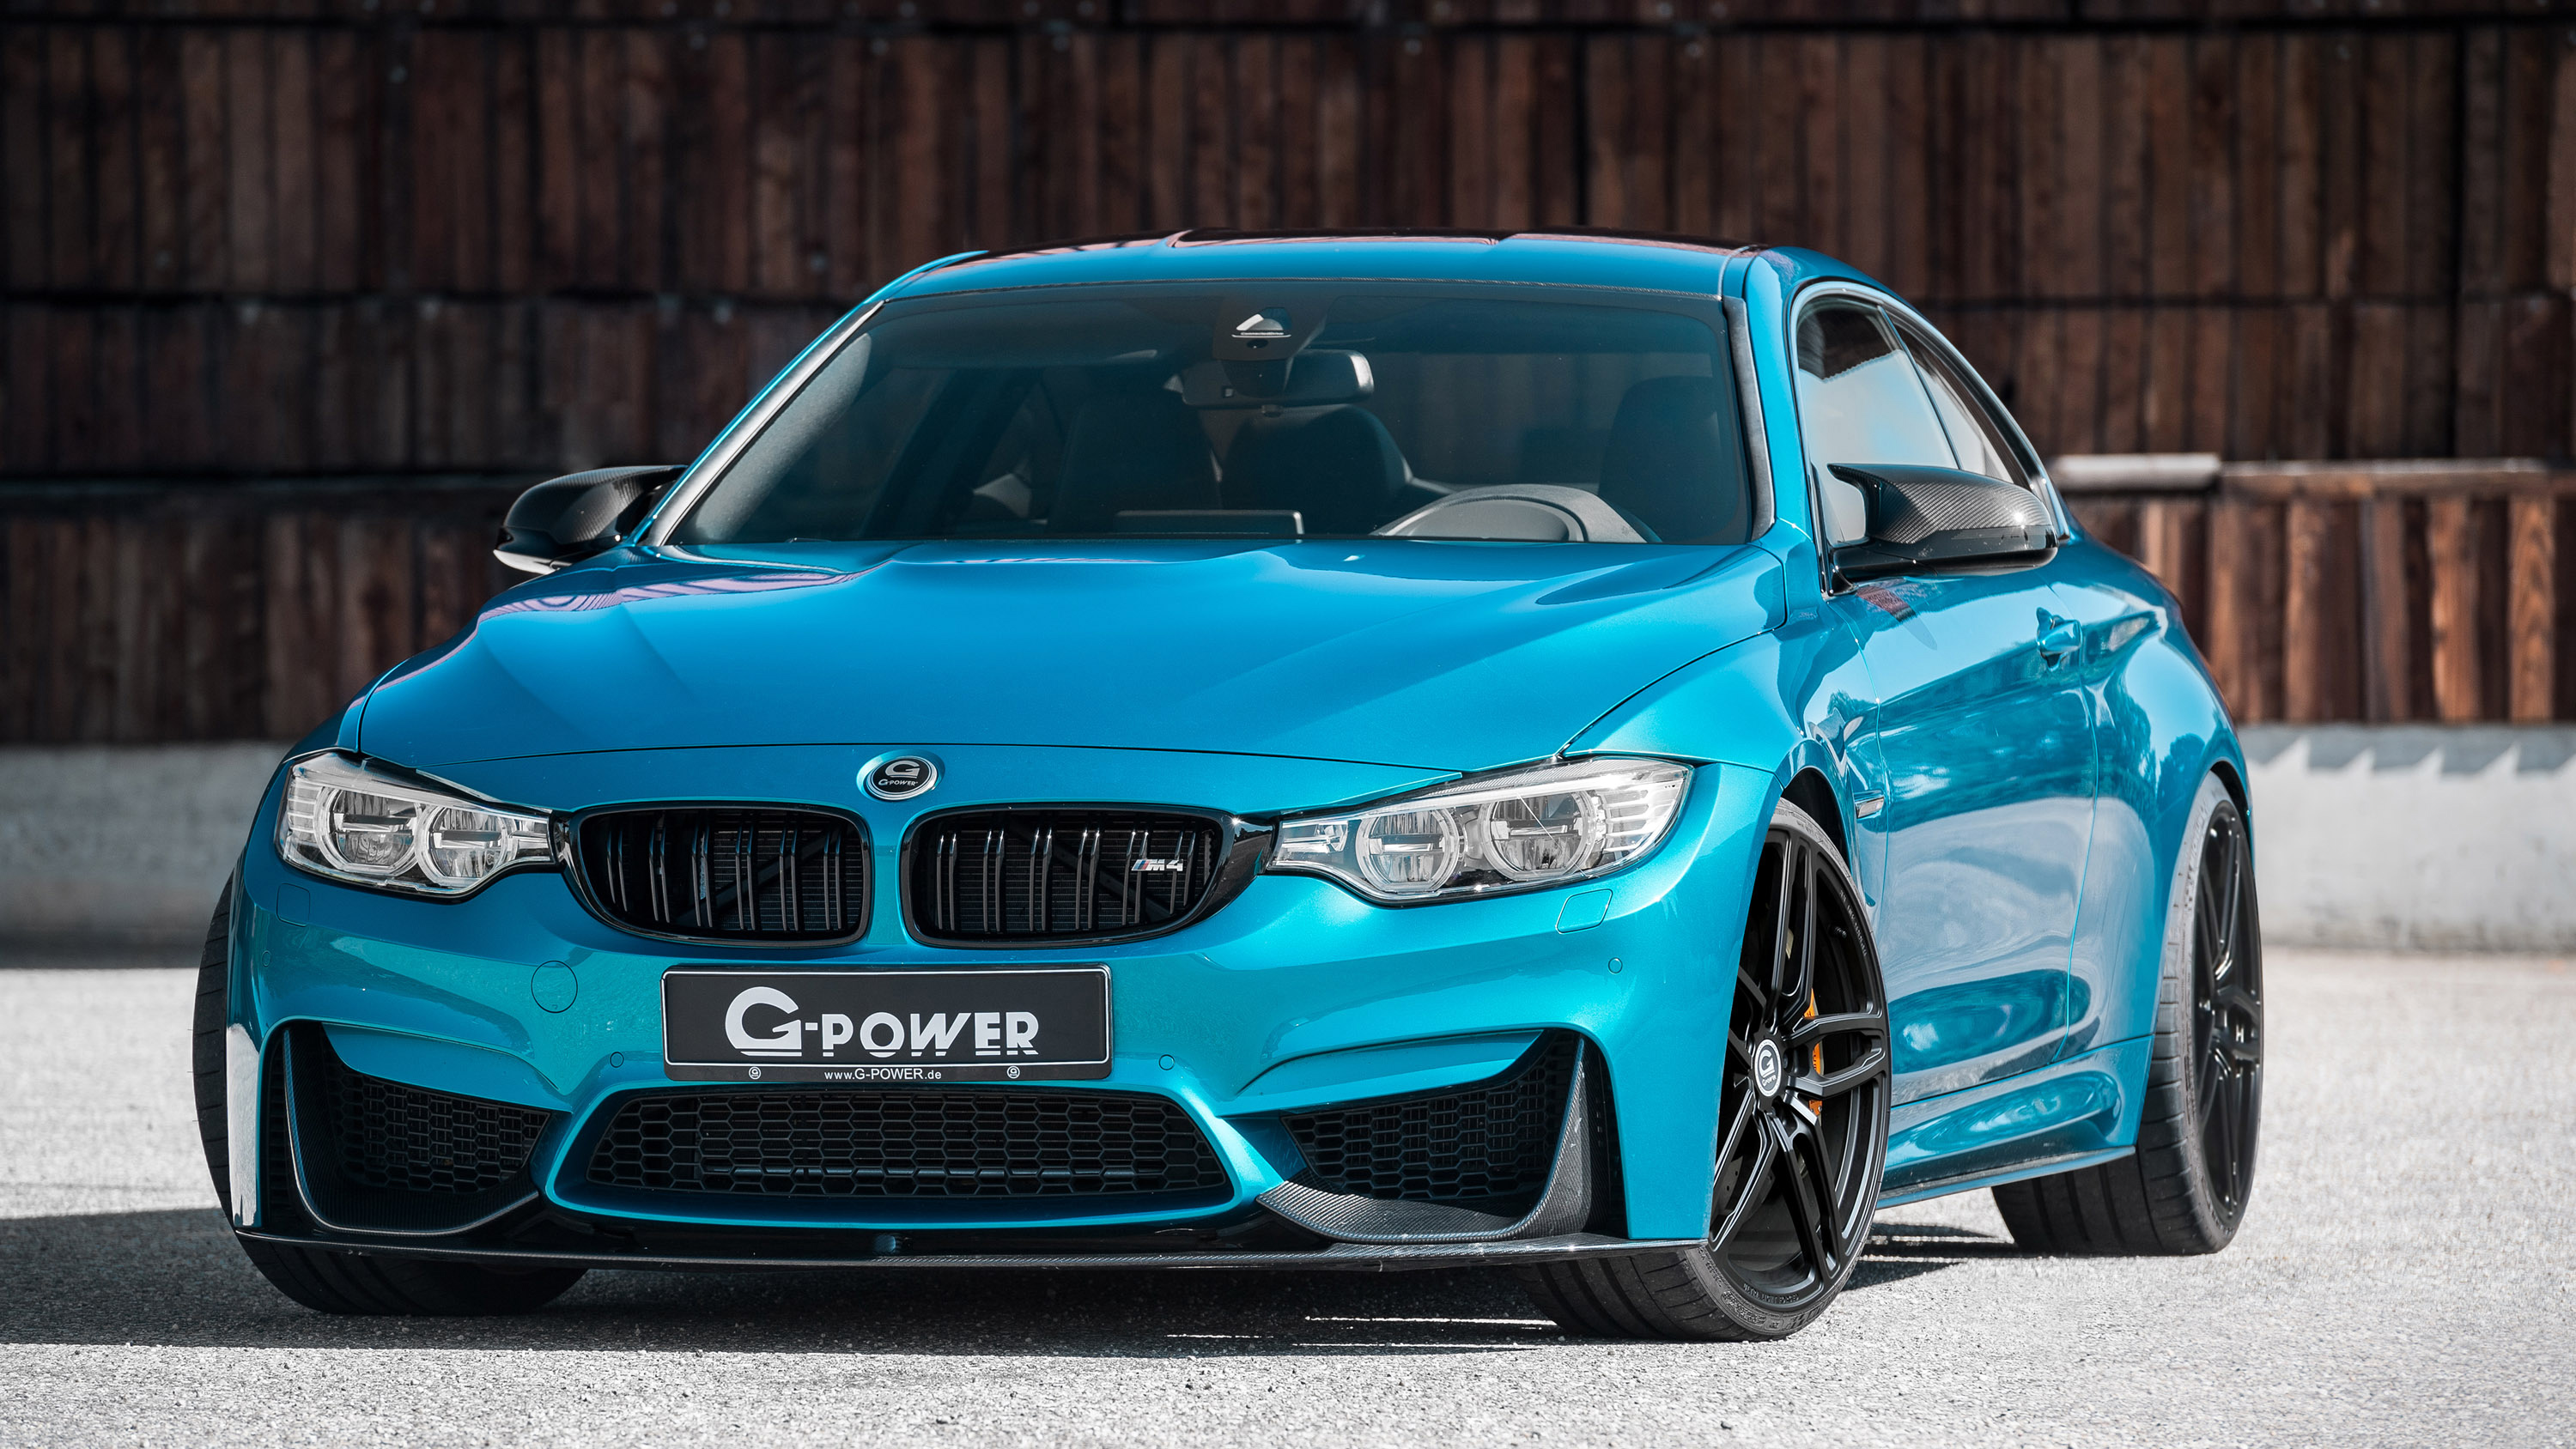 2016 G Power BMW M3 Twinpower Turbo